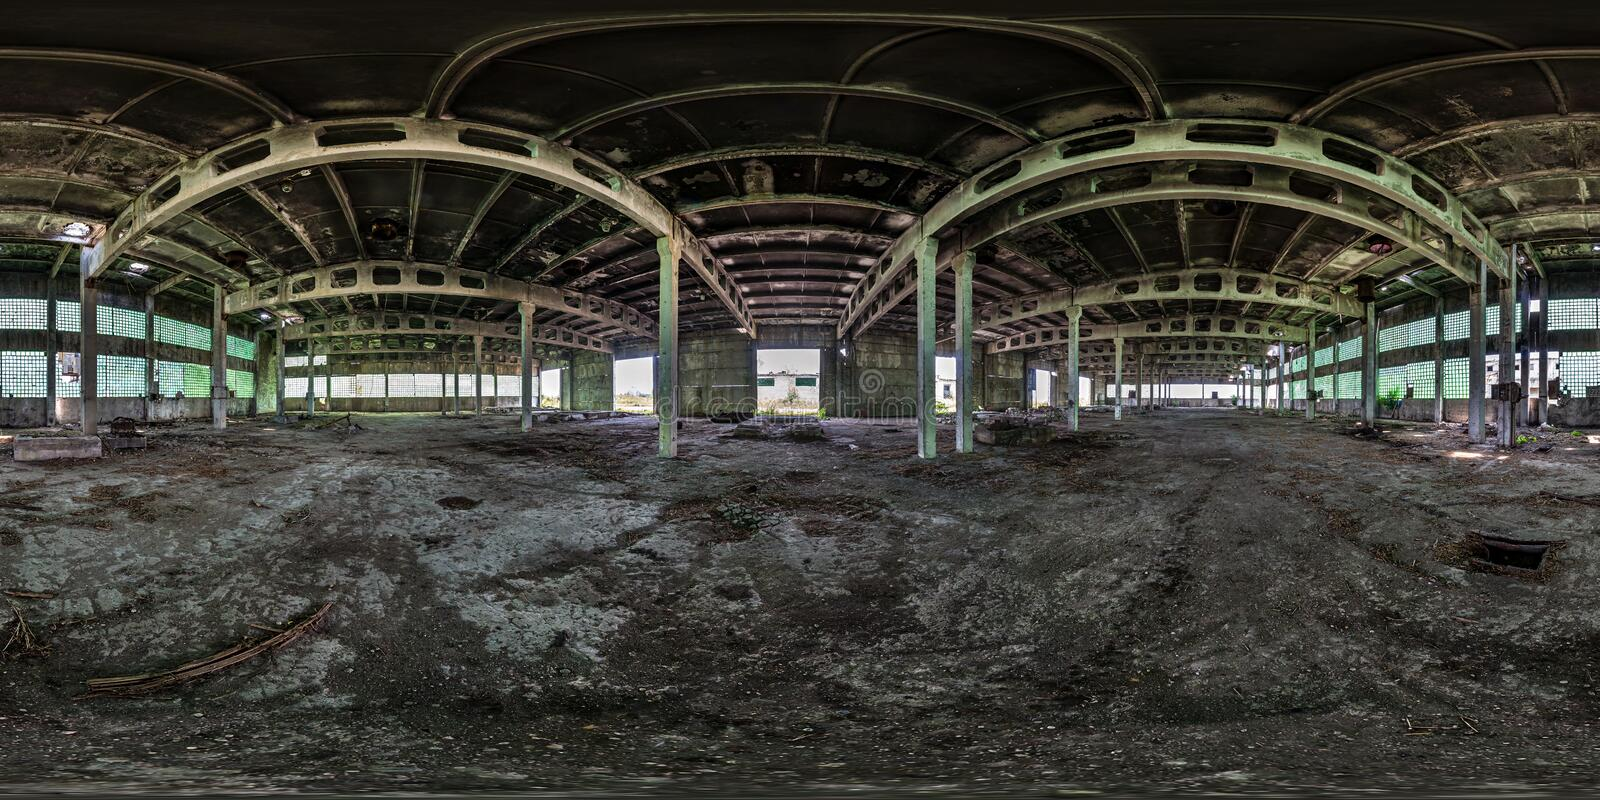 Full seamless spherical hdri panorama 360 degrees angle view inside abandoned ruined factory hangar in equirectangular projection royalty free stock image